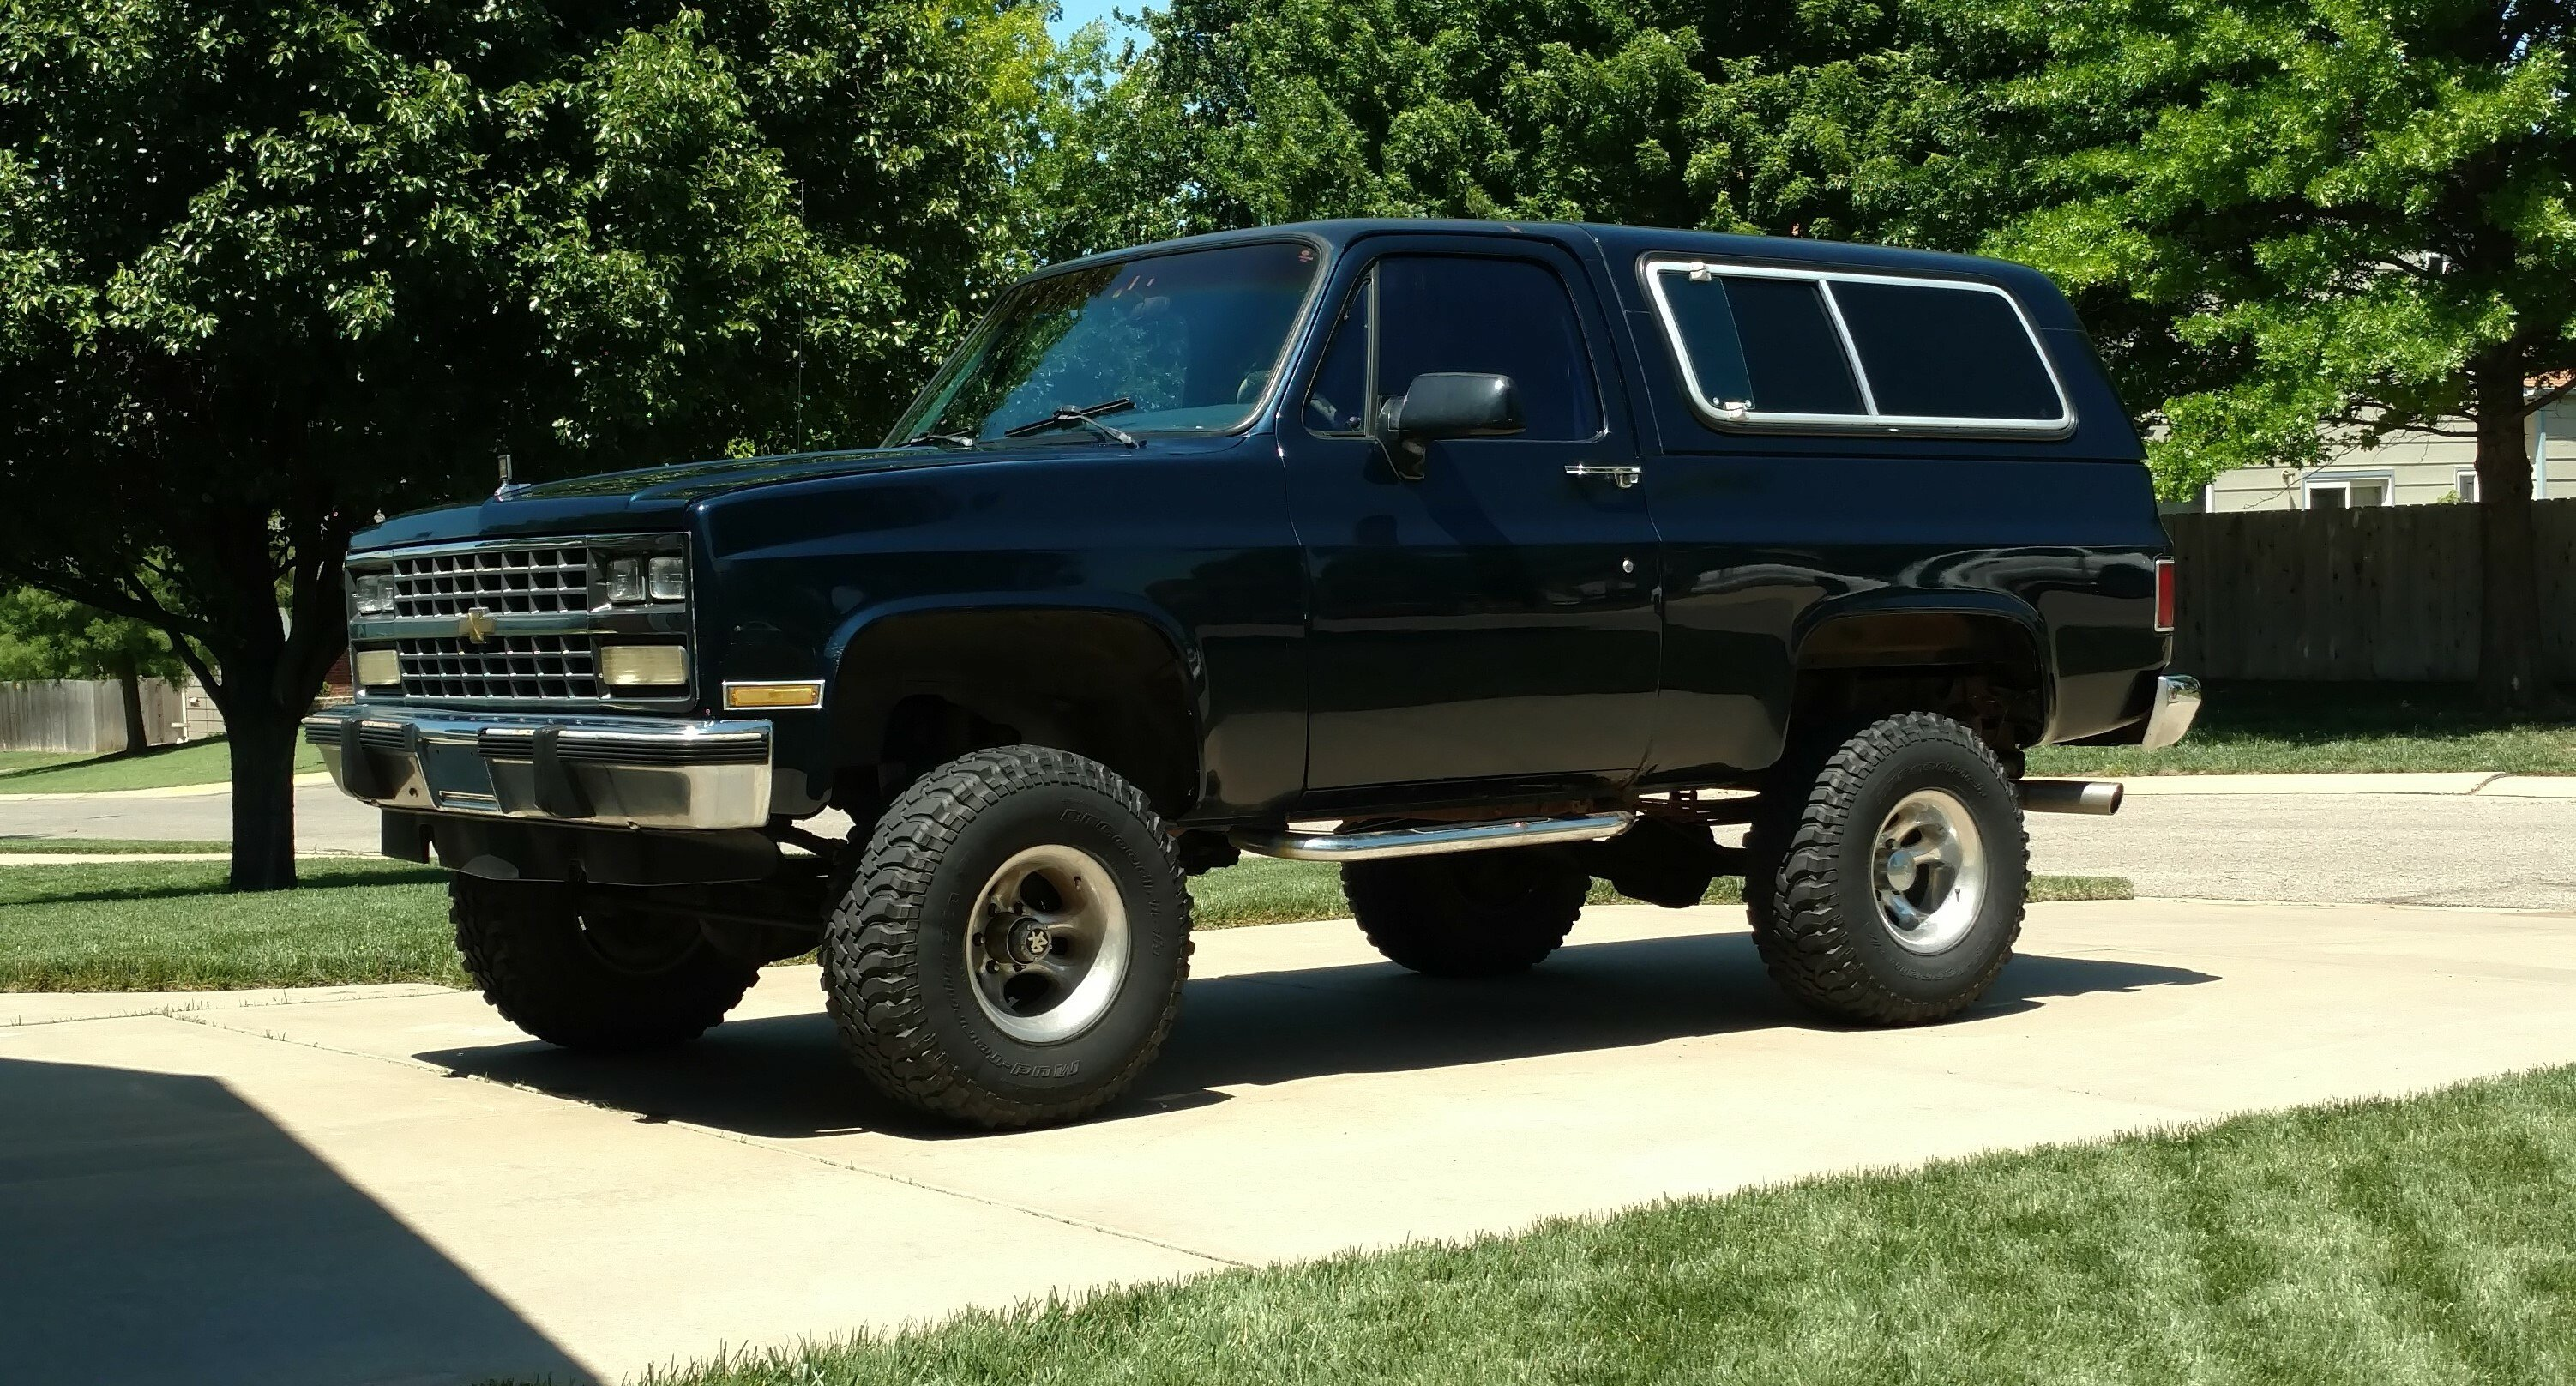 1991 Chevrolet Blazer Classics For Sale On Autotrader Full Size 1990 Chevy No Power To